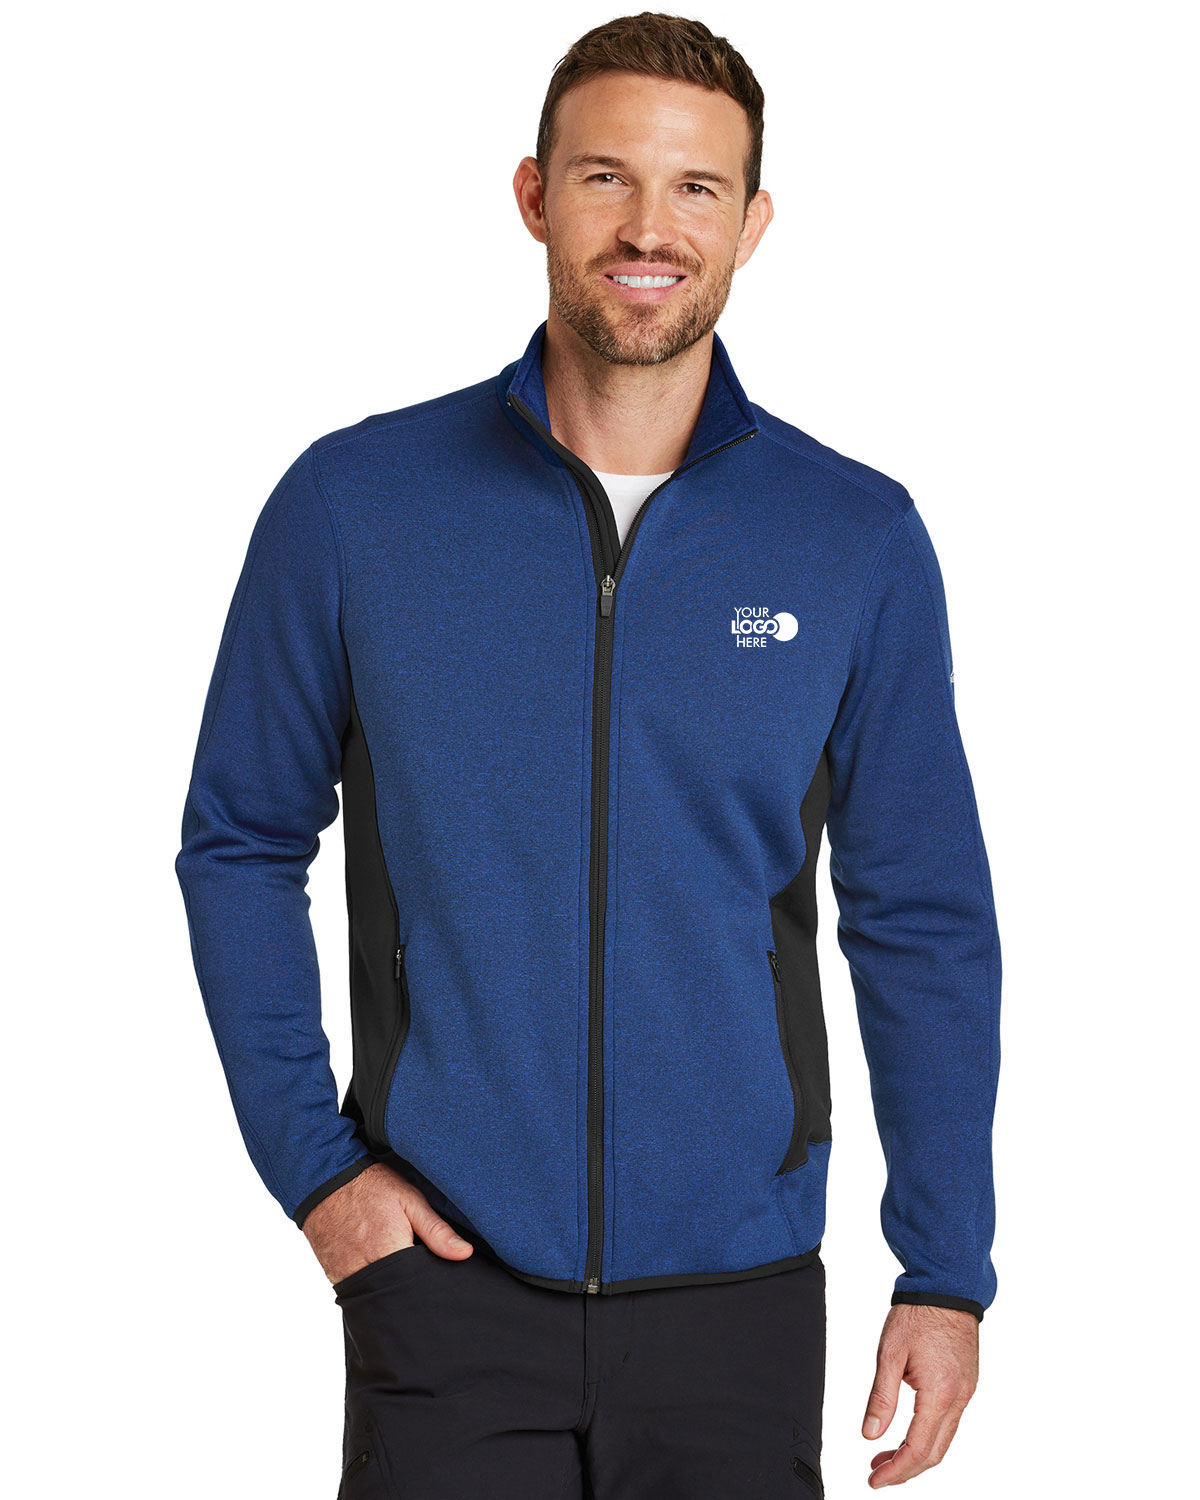 Eddie Bauer EB238 Mens Full-Zip Fleece Jacket